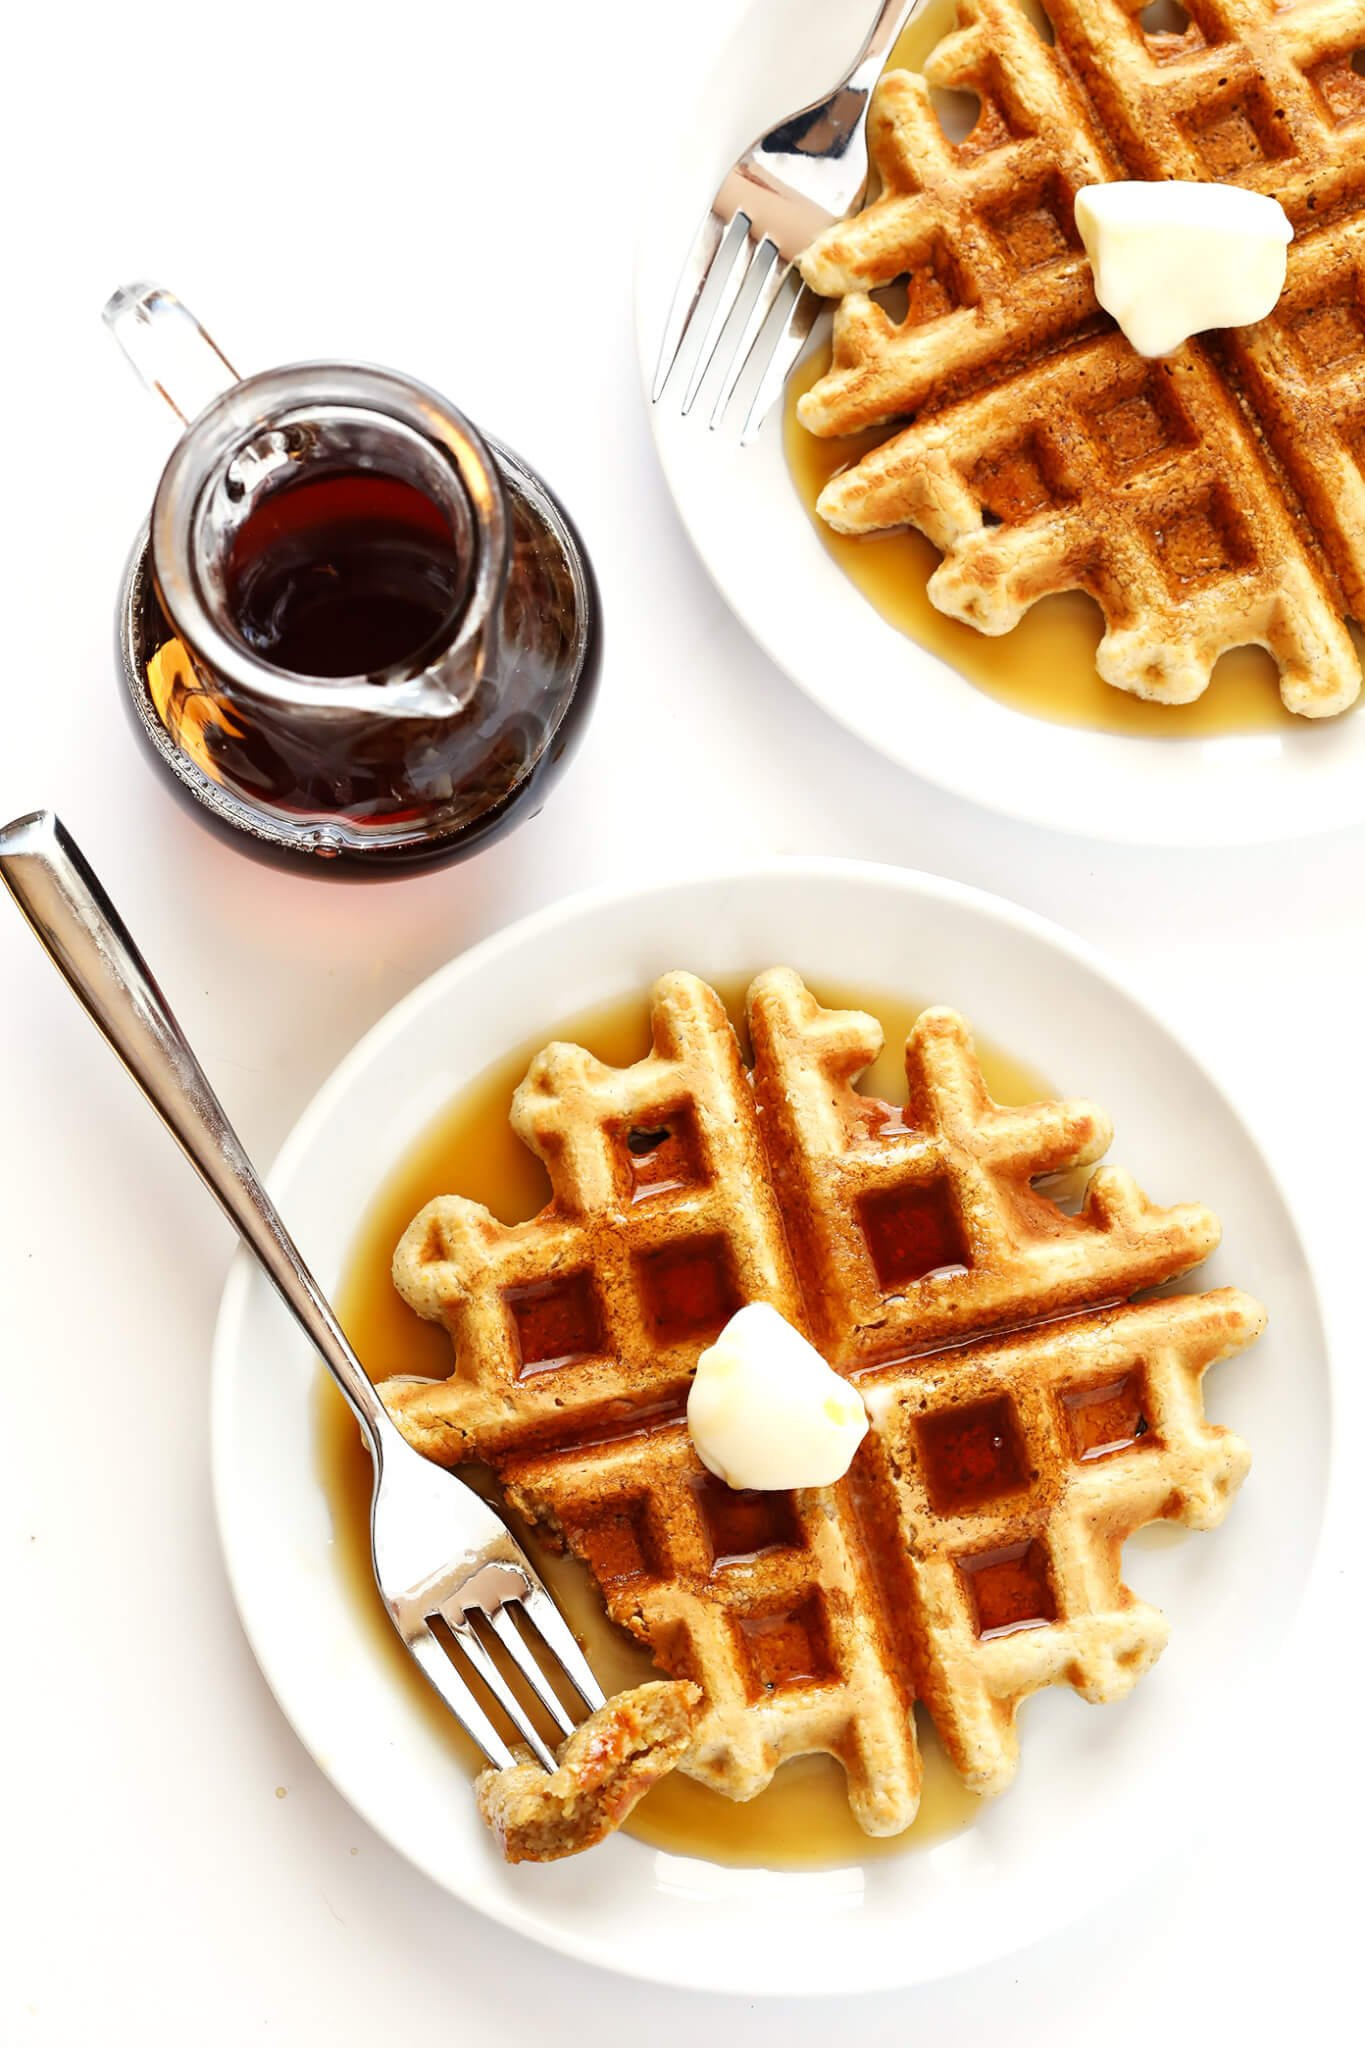 This easy Gluten-Free Waffles recipe is made with everyday ingredients you probably already have on hand (like lots of old-fashioned oats), and it's the perfect easy recipe for breakfast or brunch!